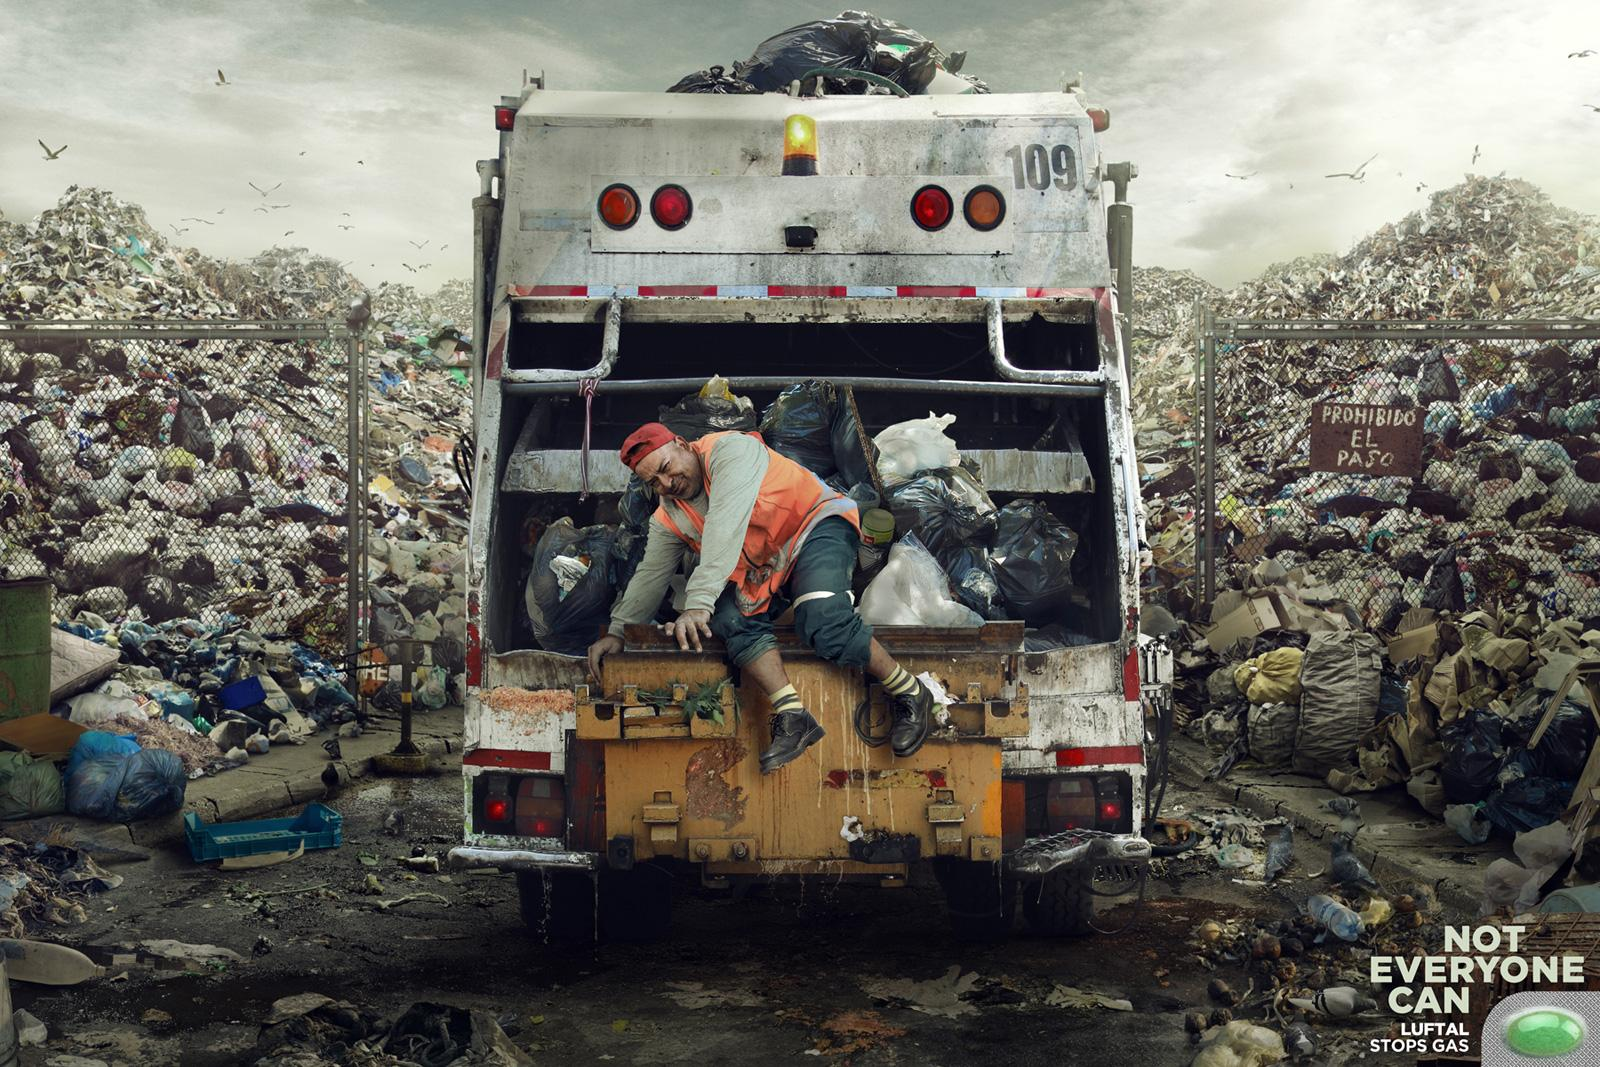 Luftal Print Ad -  Not everyone can, Garbage man